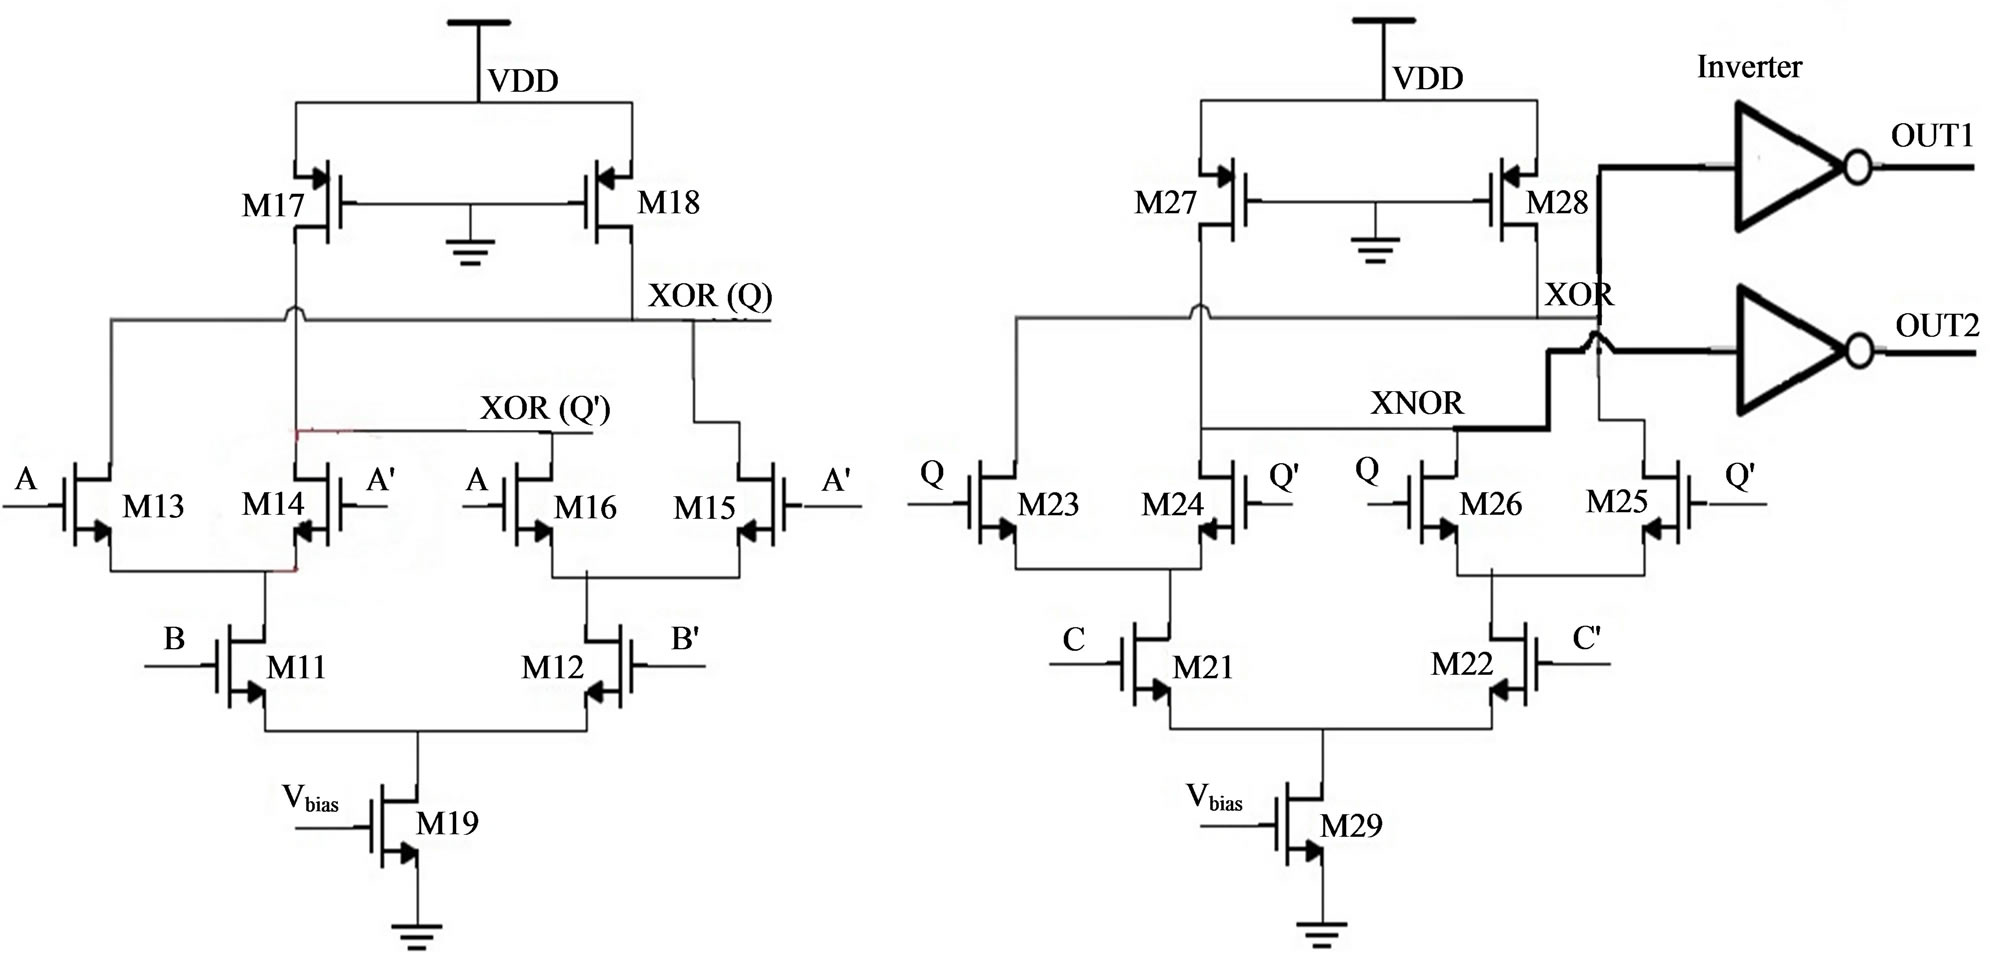 Xor Schematic Diagram Cmos Technology Wire Data Schema Wiring Lampu Kalimantang Current Mode Logic Testing Of Xnor Circuit A Case Study Rh File Scirp Org